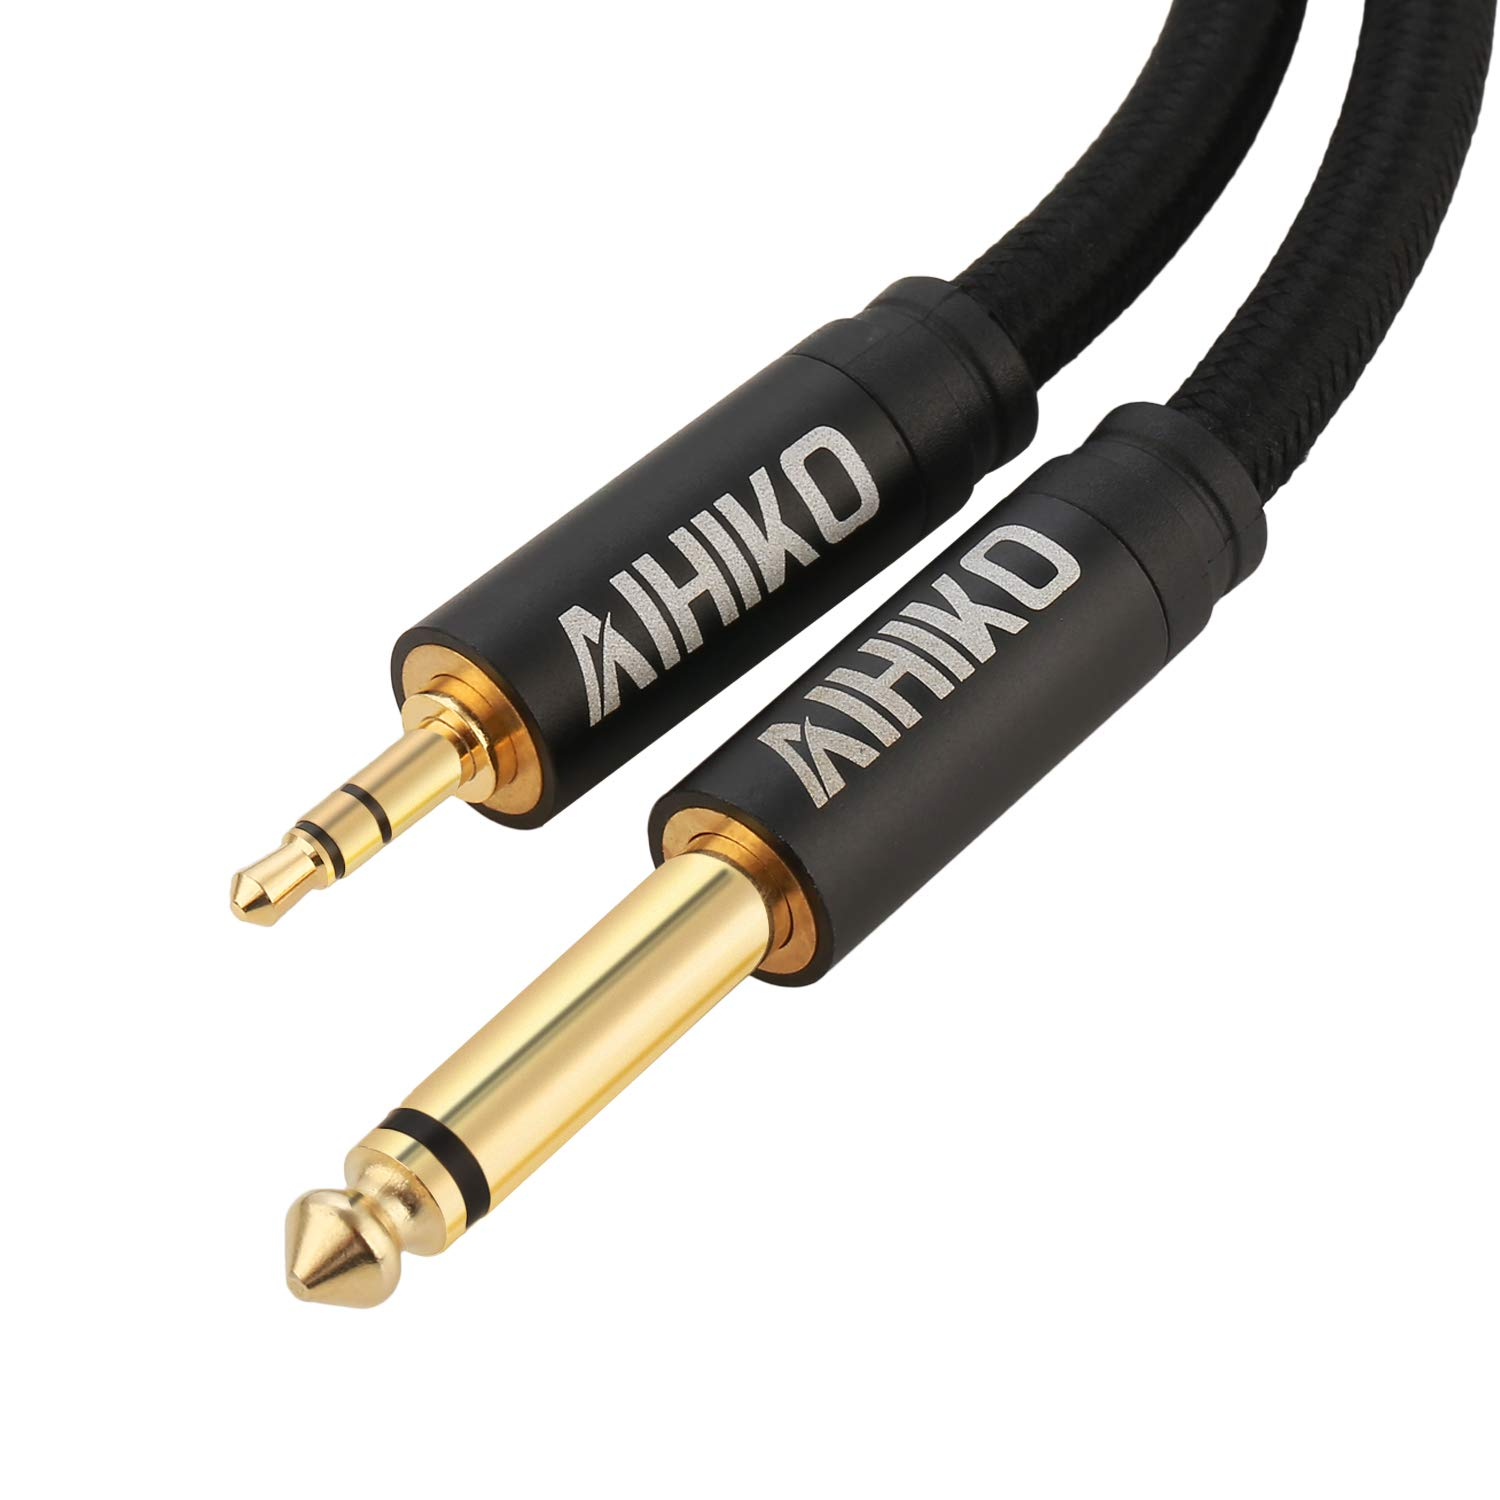 AIHIKO 3.5mm to 6.35mm Audio Cable with Zinc Alloy Housing and Gold Plugs Nylon Braid Stereo 1/4-inch to 1/8-inch Jack Cord for Phone, Laptop, Home Theater Devices and Amplifiers - 6 Feet Black BL63-2M